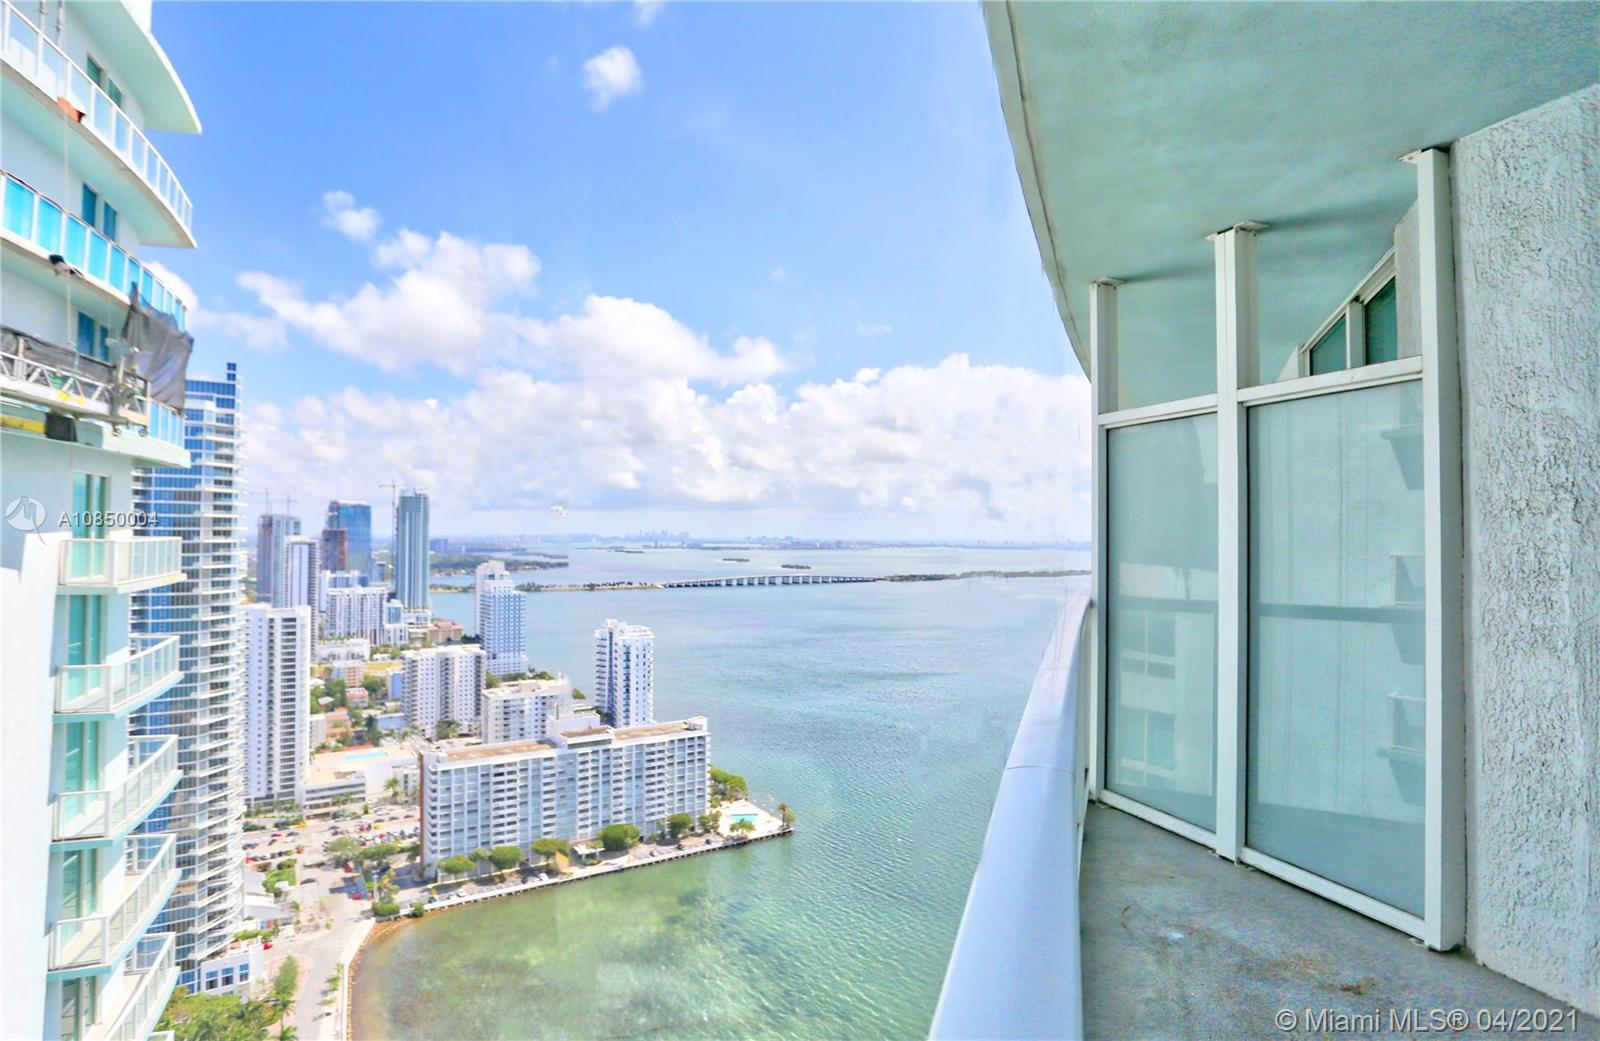 Amazing Bay view in this 1 bedroom /1 bath unit at Quantum on the Bay. European kitchen cabinets, Whirlpool appliances, granite counter tops, large balcony, cable TV, 2 pools, gym, spa, sauna, lounge room with pool tables, multiple party rooms, business center, concierge, valet parking and 24 hrs security.